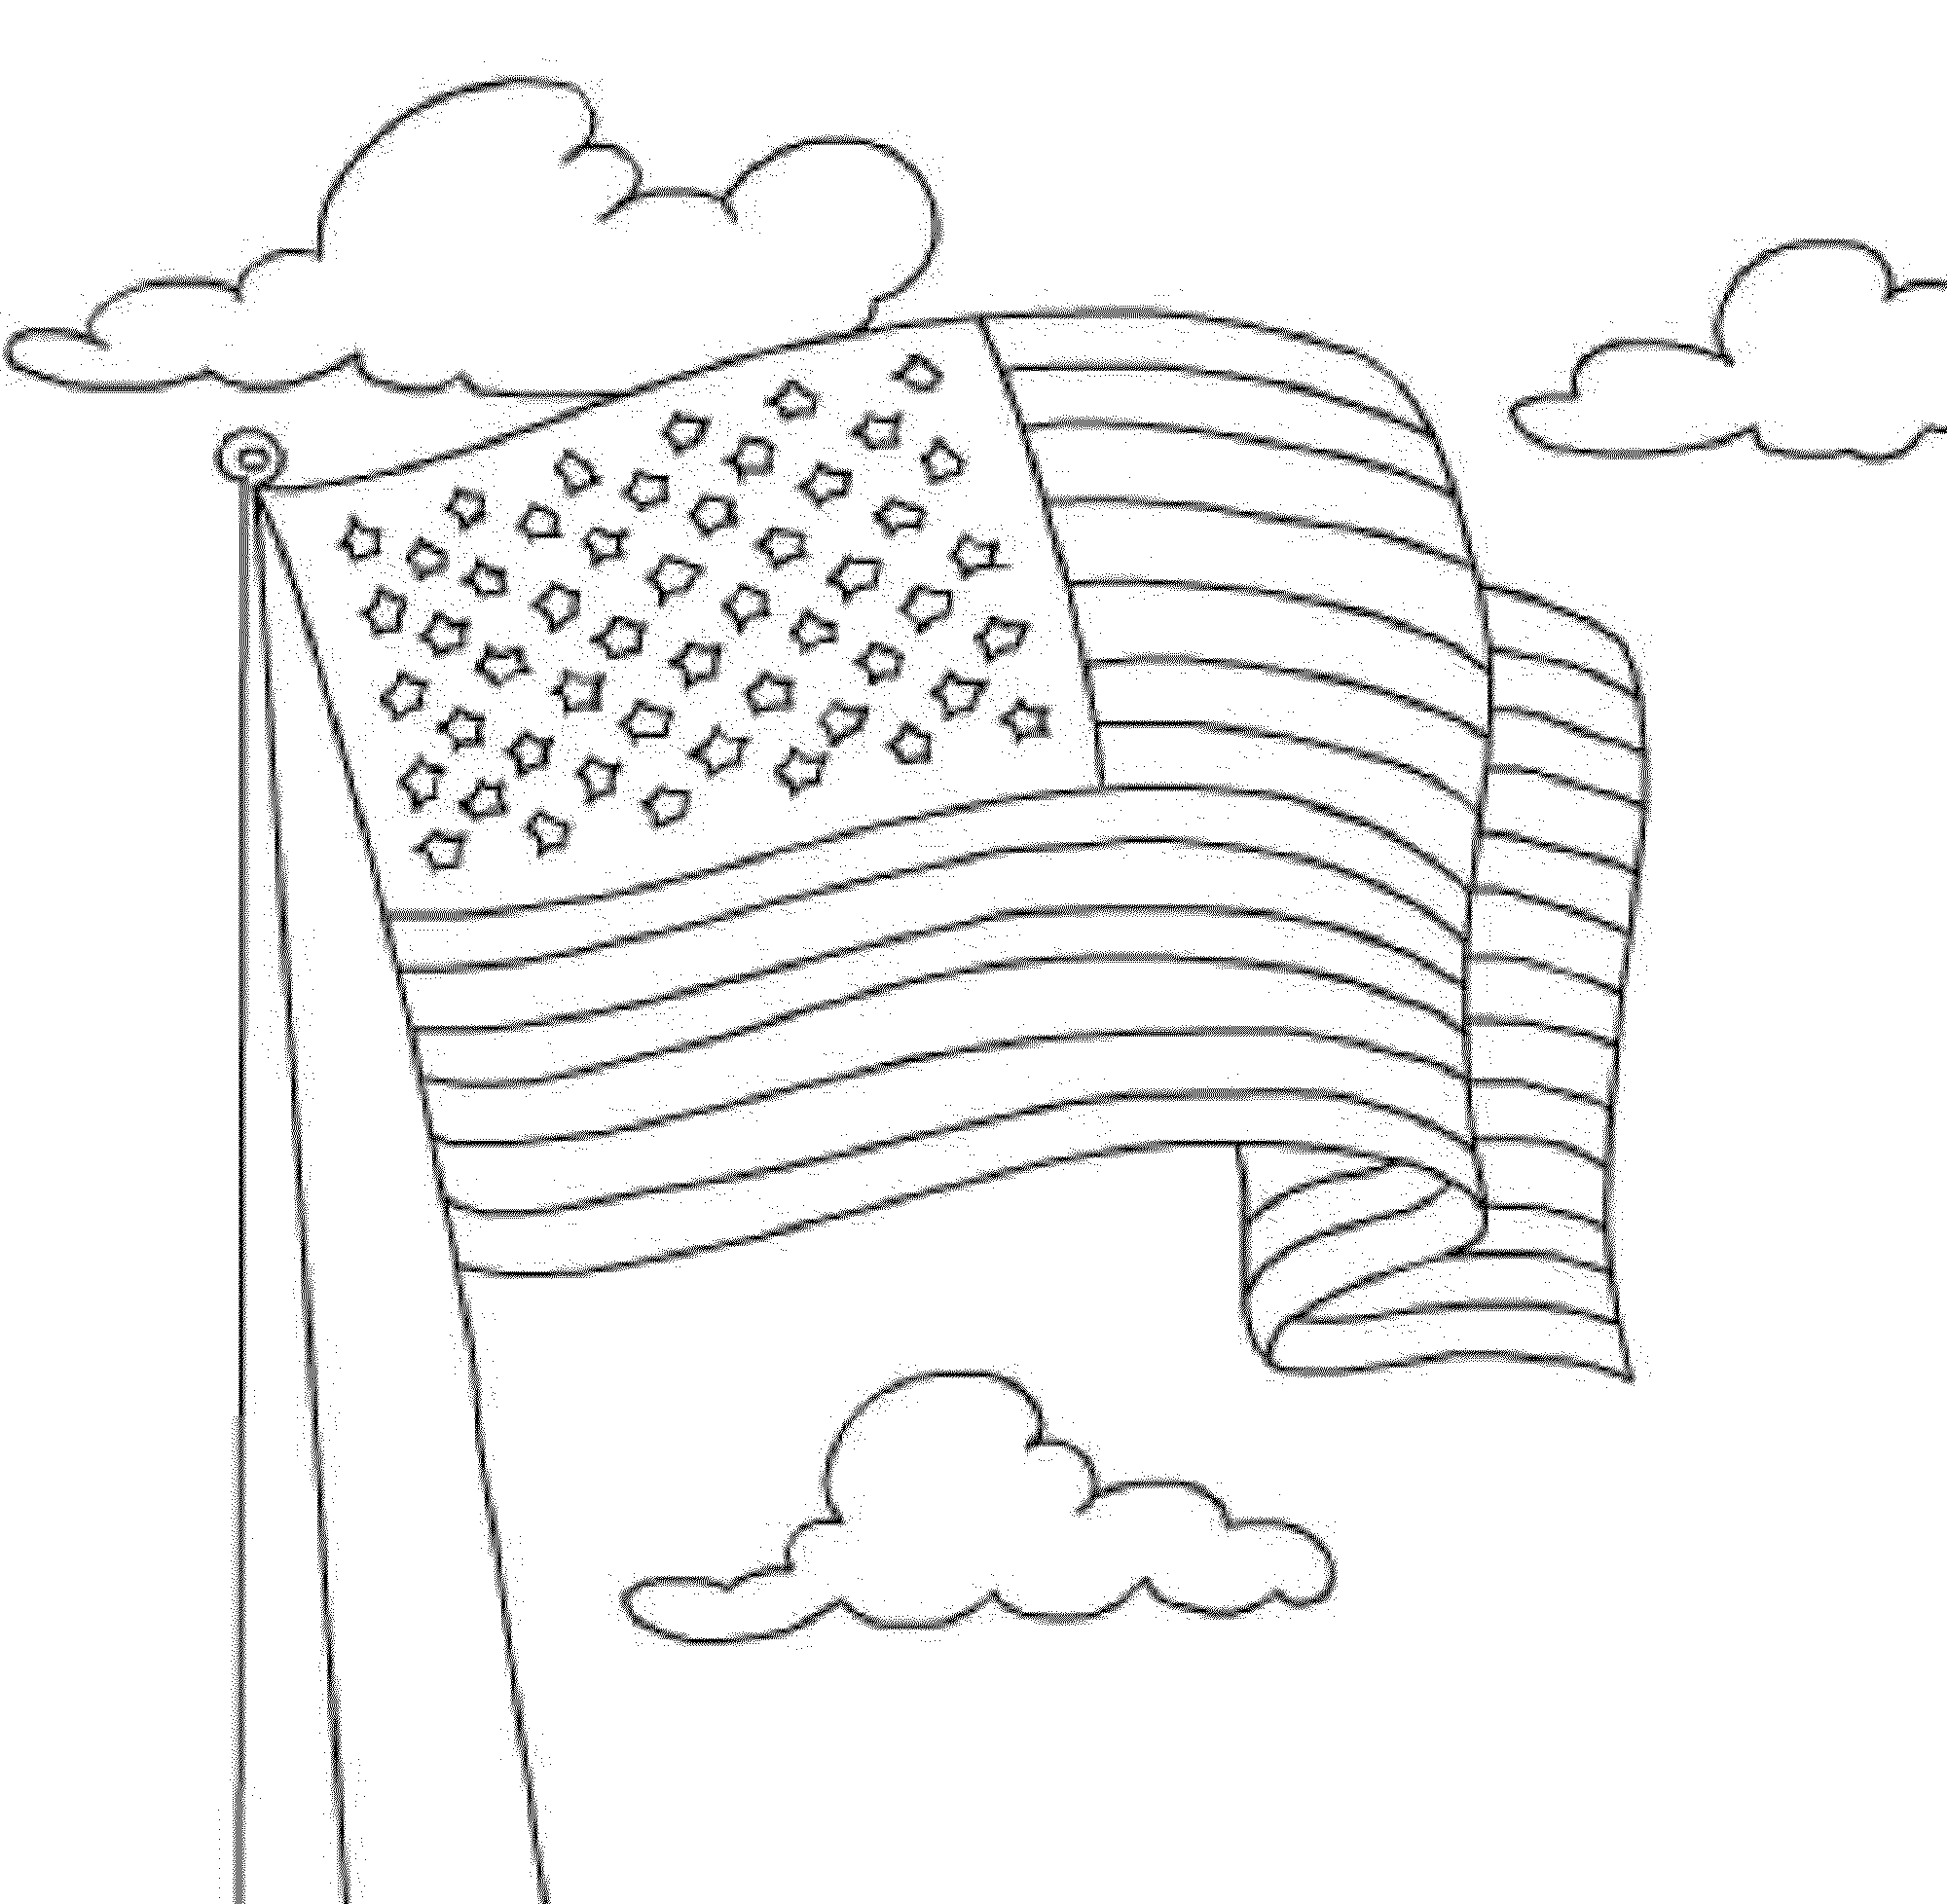 the american flag coloring page american flag coloring pages 2018 z31 coloring page flag american coloring page the